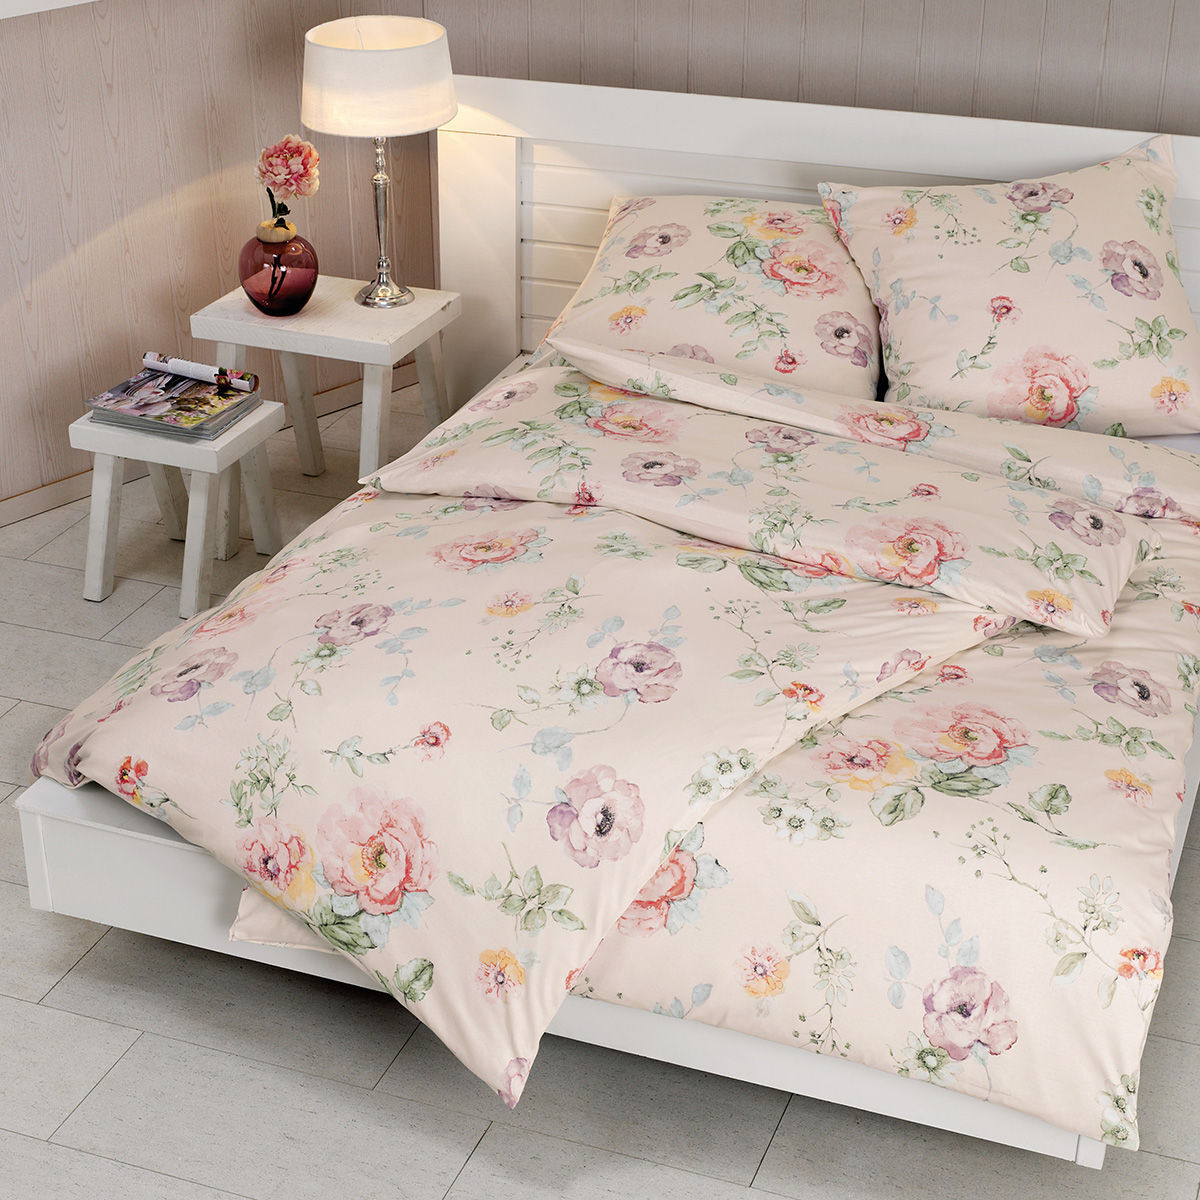 estella jersey bettw sche blumen karstadt online shop. Black Bedroom Furniture Sets. Home Design Ideas